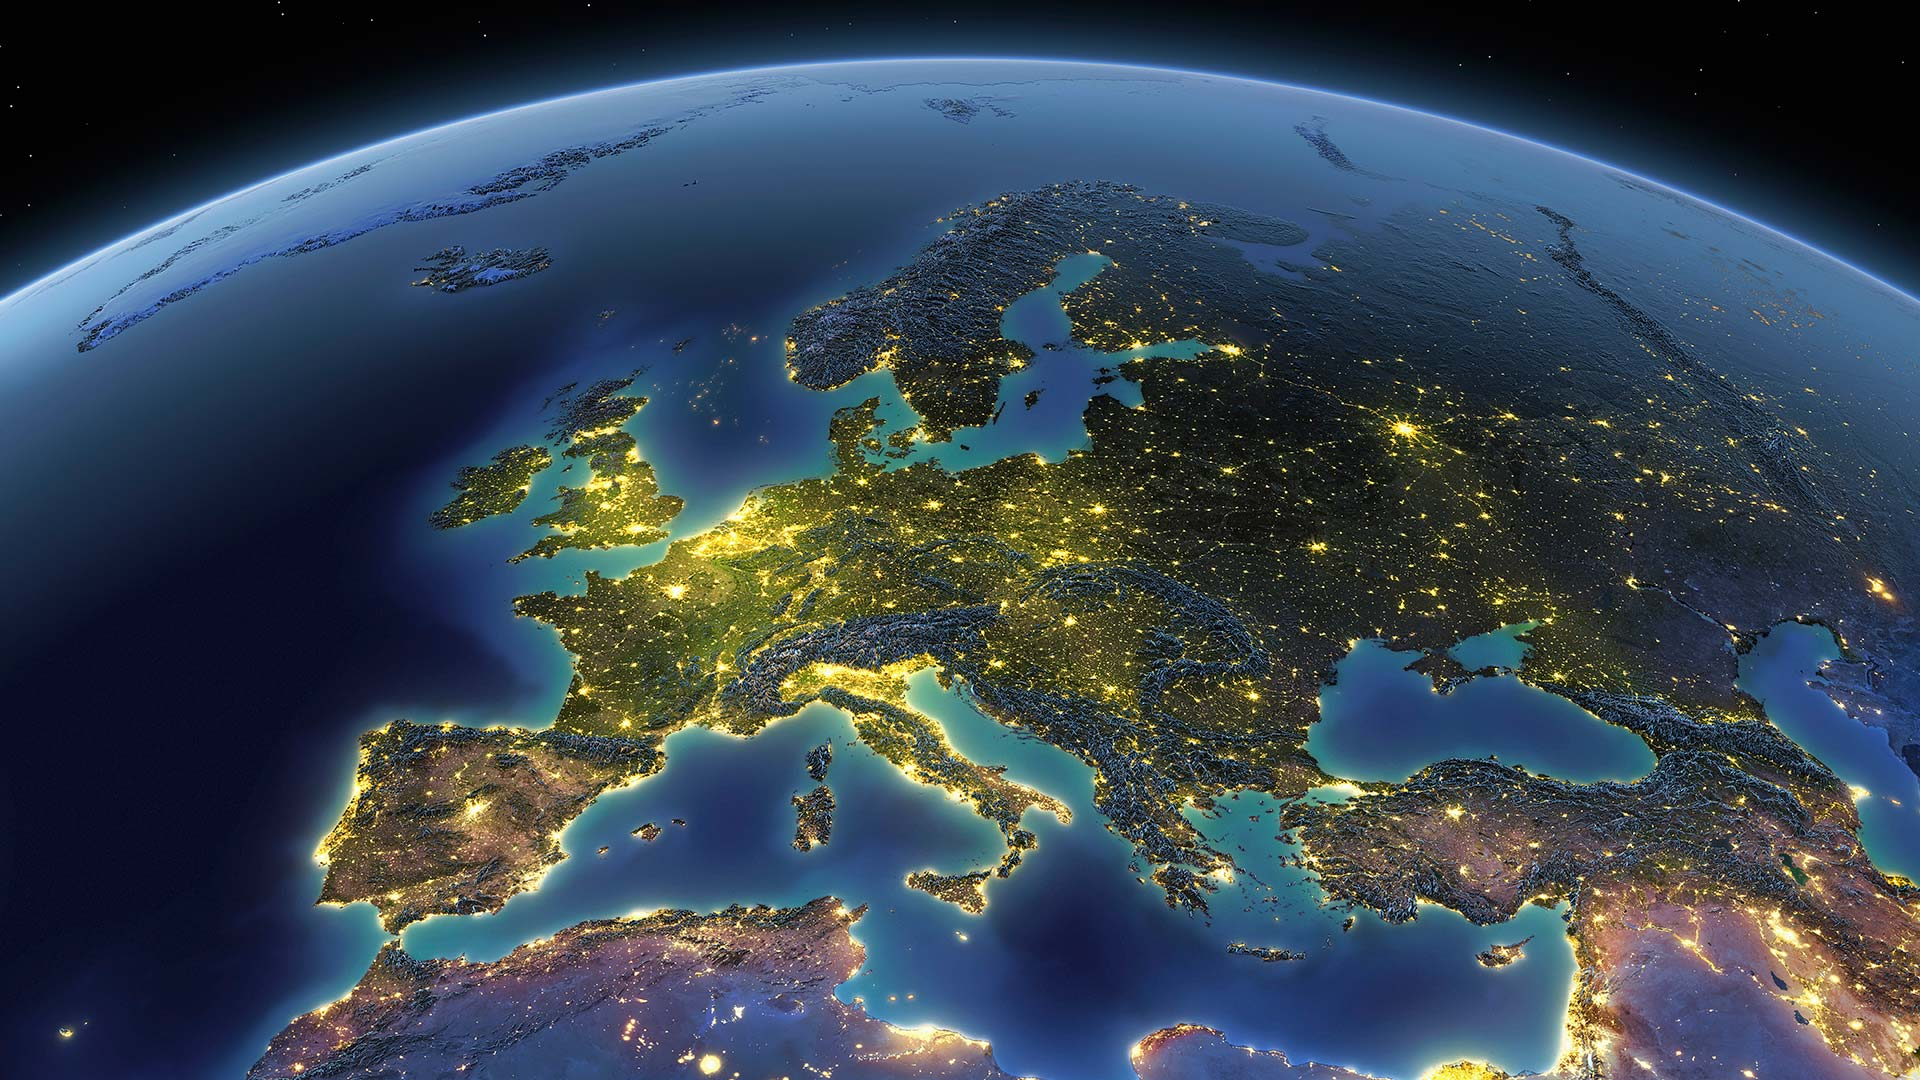 British Ecological Society image of Europe from Space